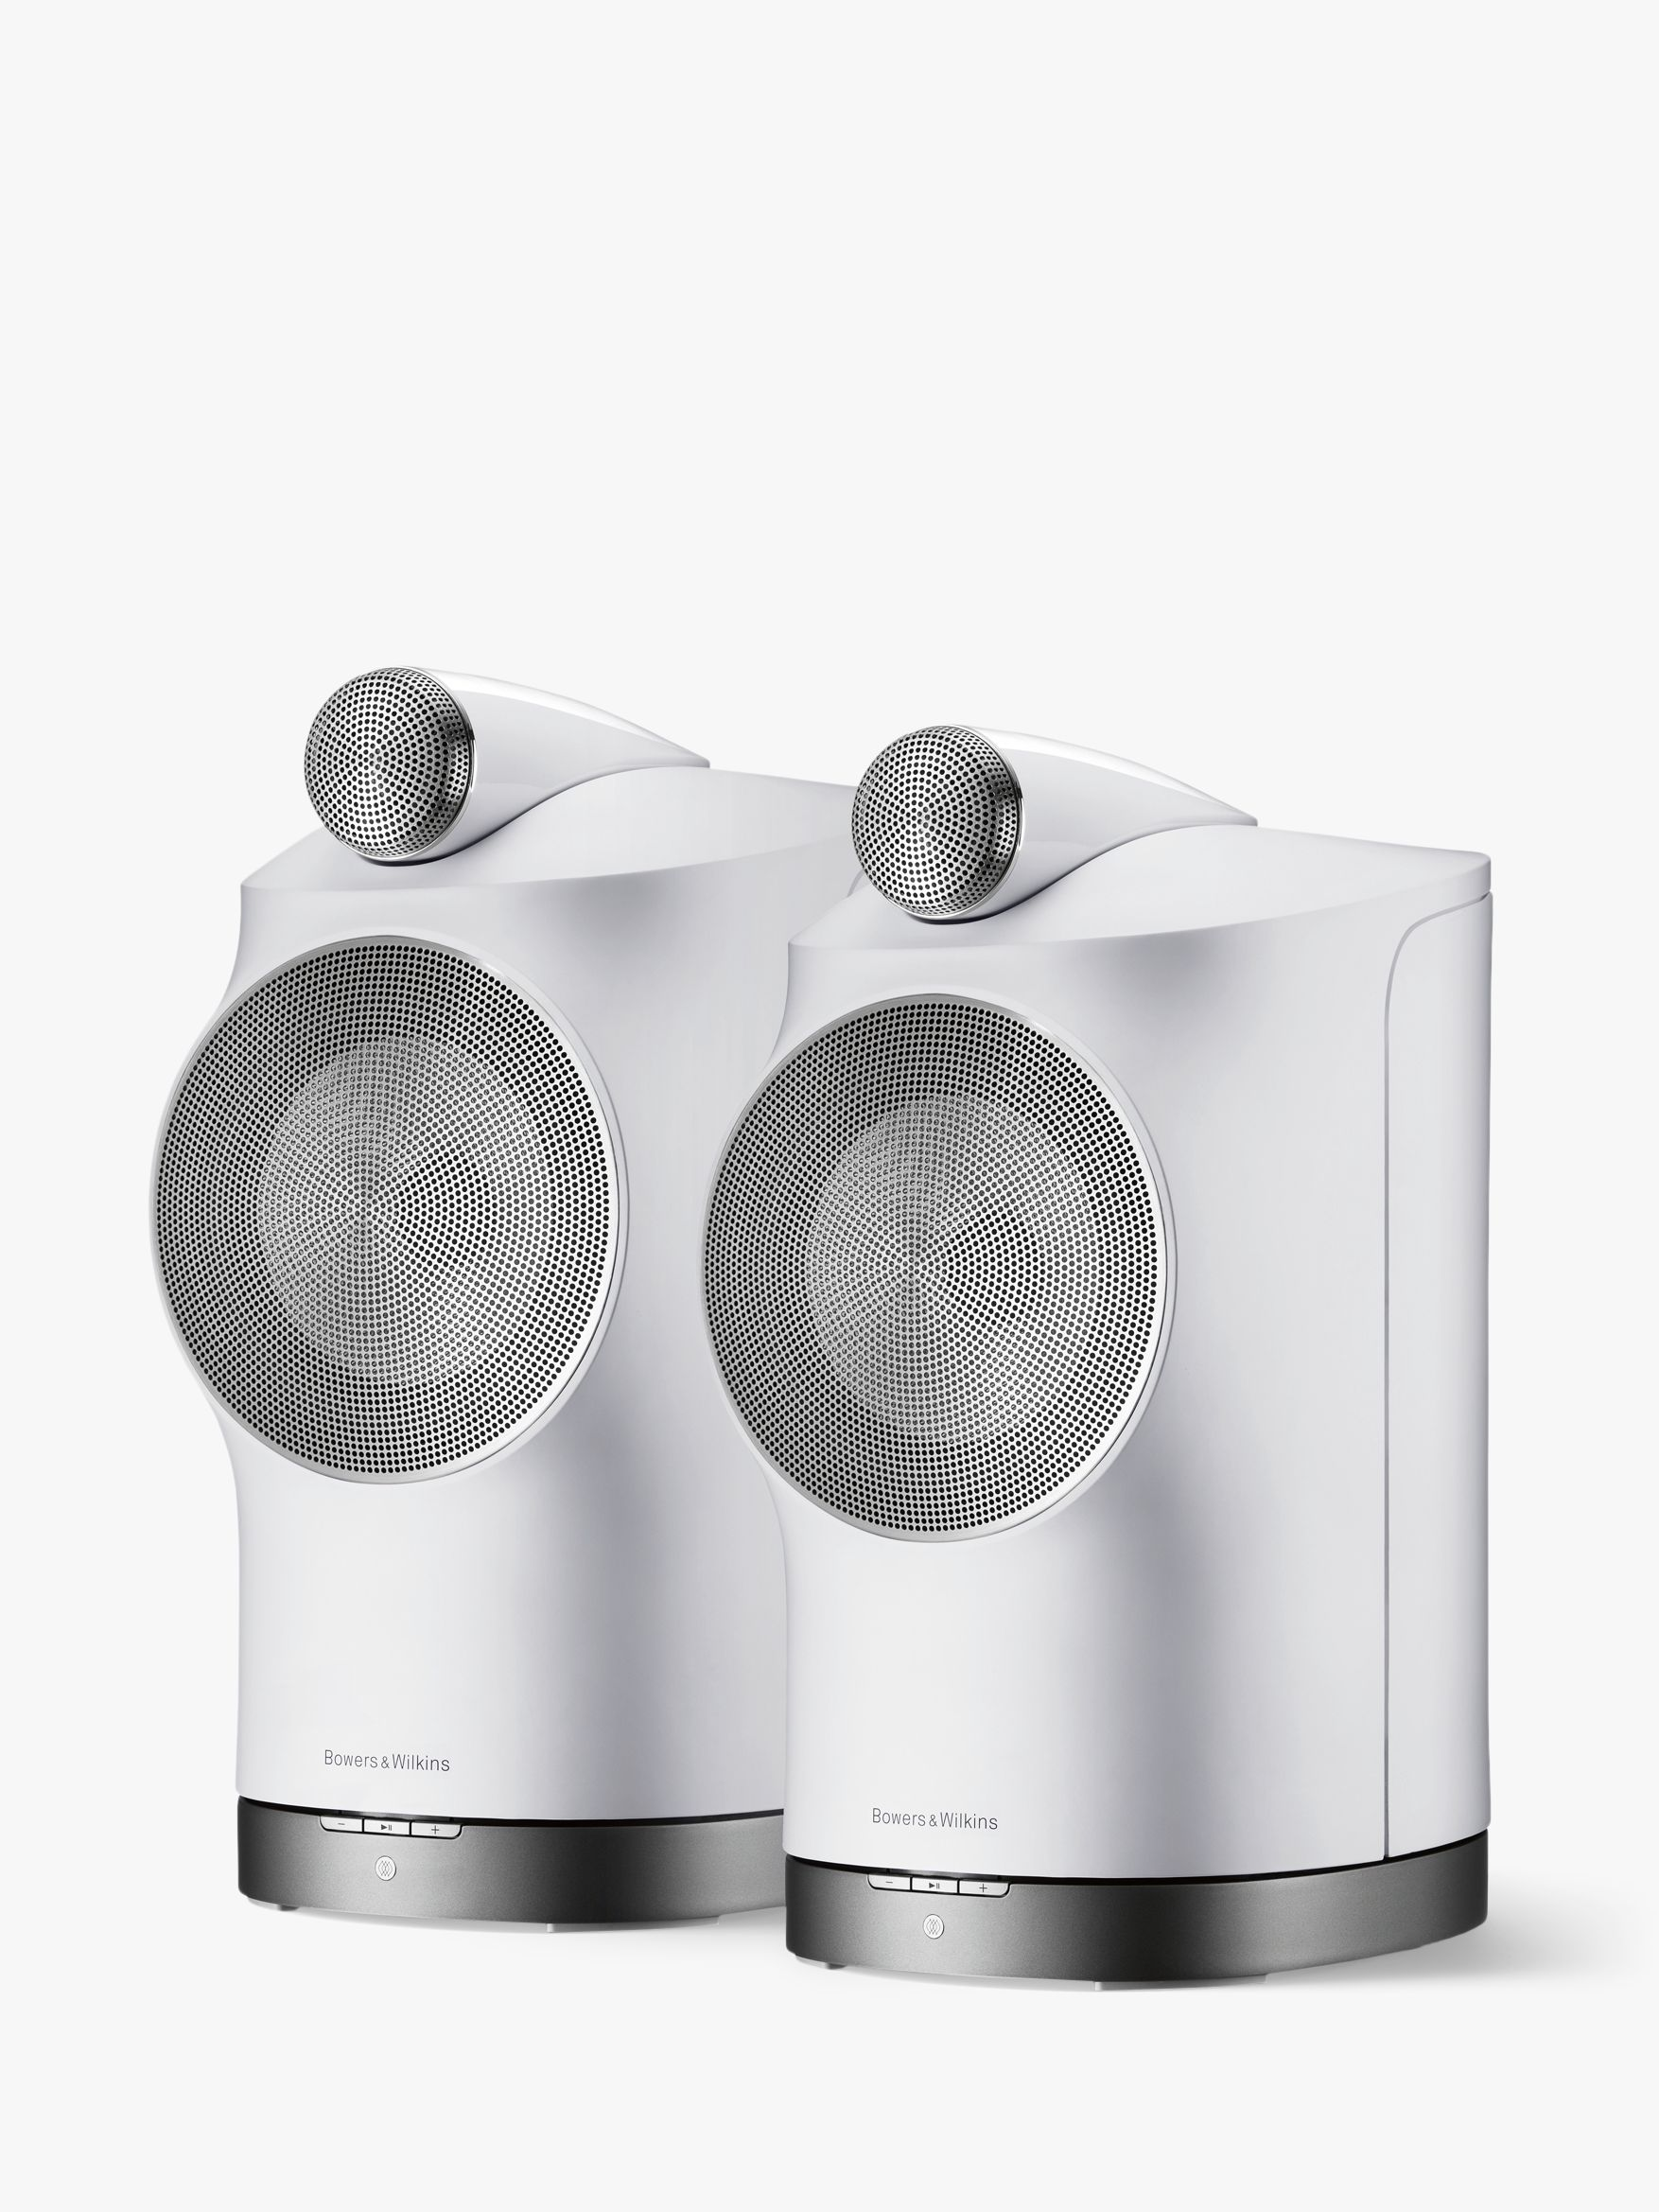 Bowers & Wilkins Bowers & Wilkins Formation Duo Bluetooth Wi-Fi Stereo Speakers